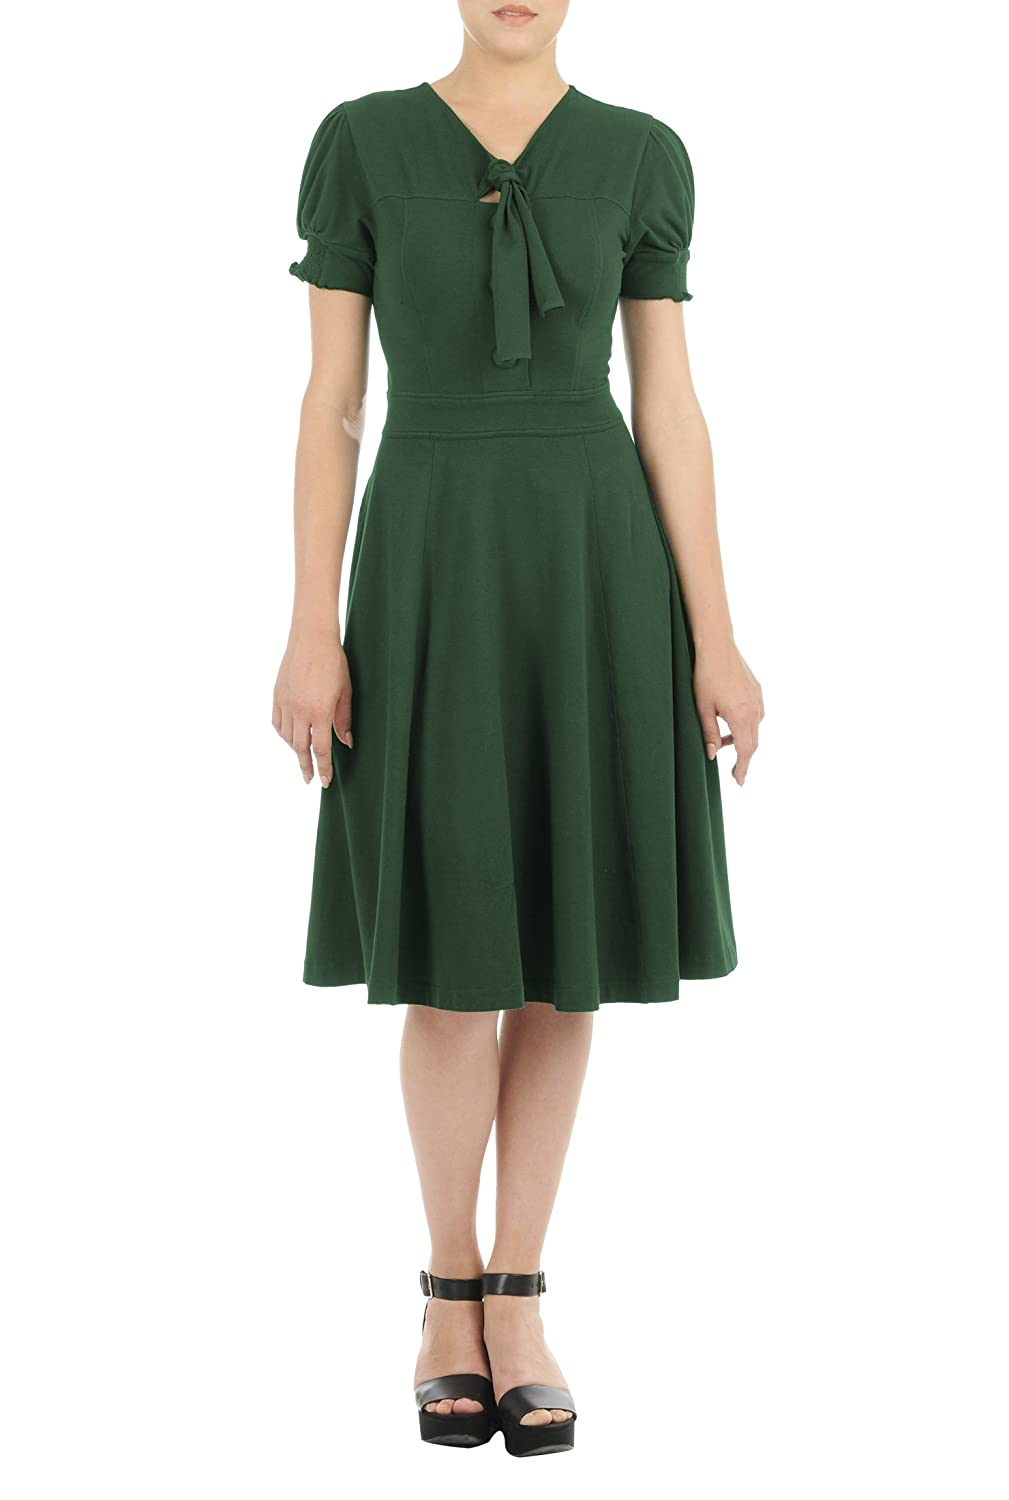 Vintage Inspired Clothing Stores  Tie-neck cotton jersey knit dress $62.95 AT vintagedancer.com